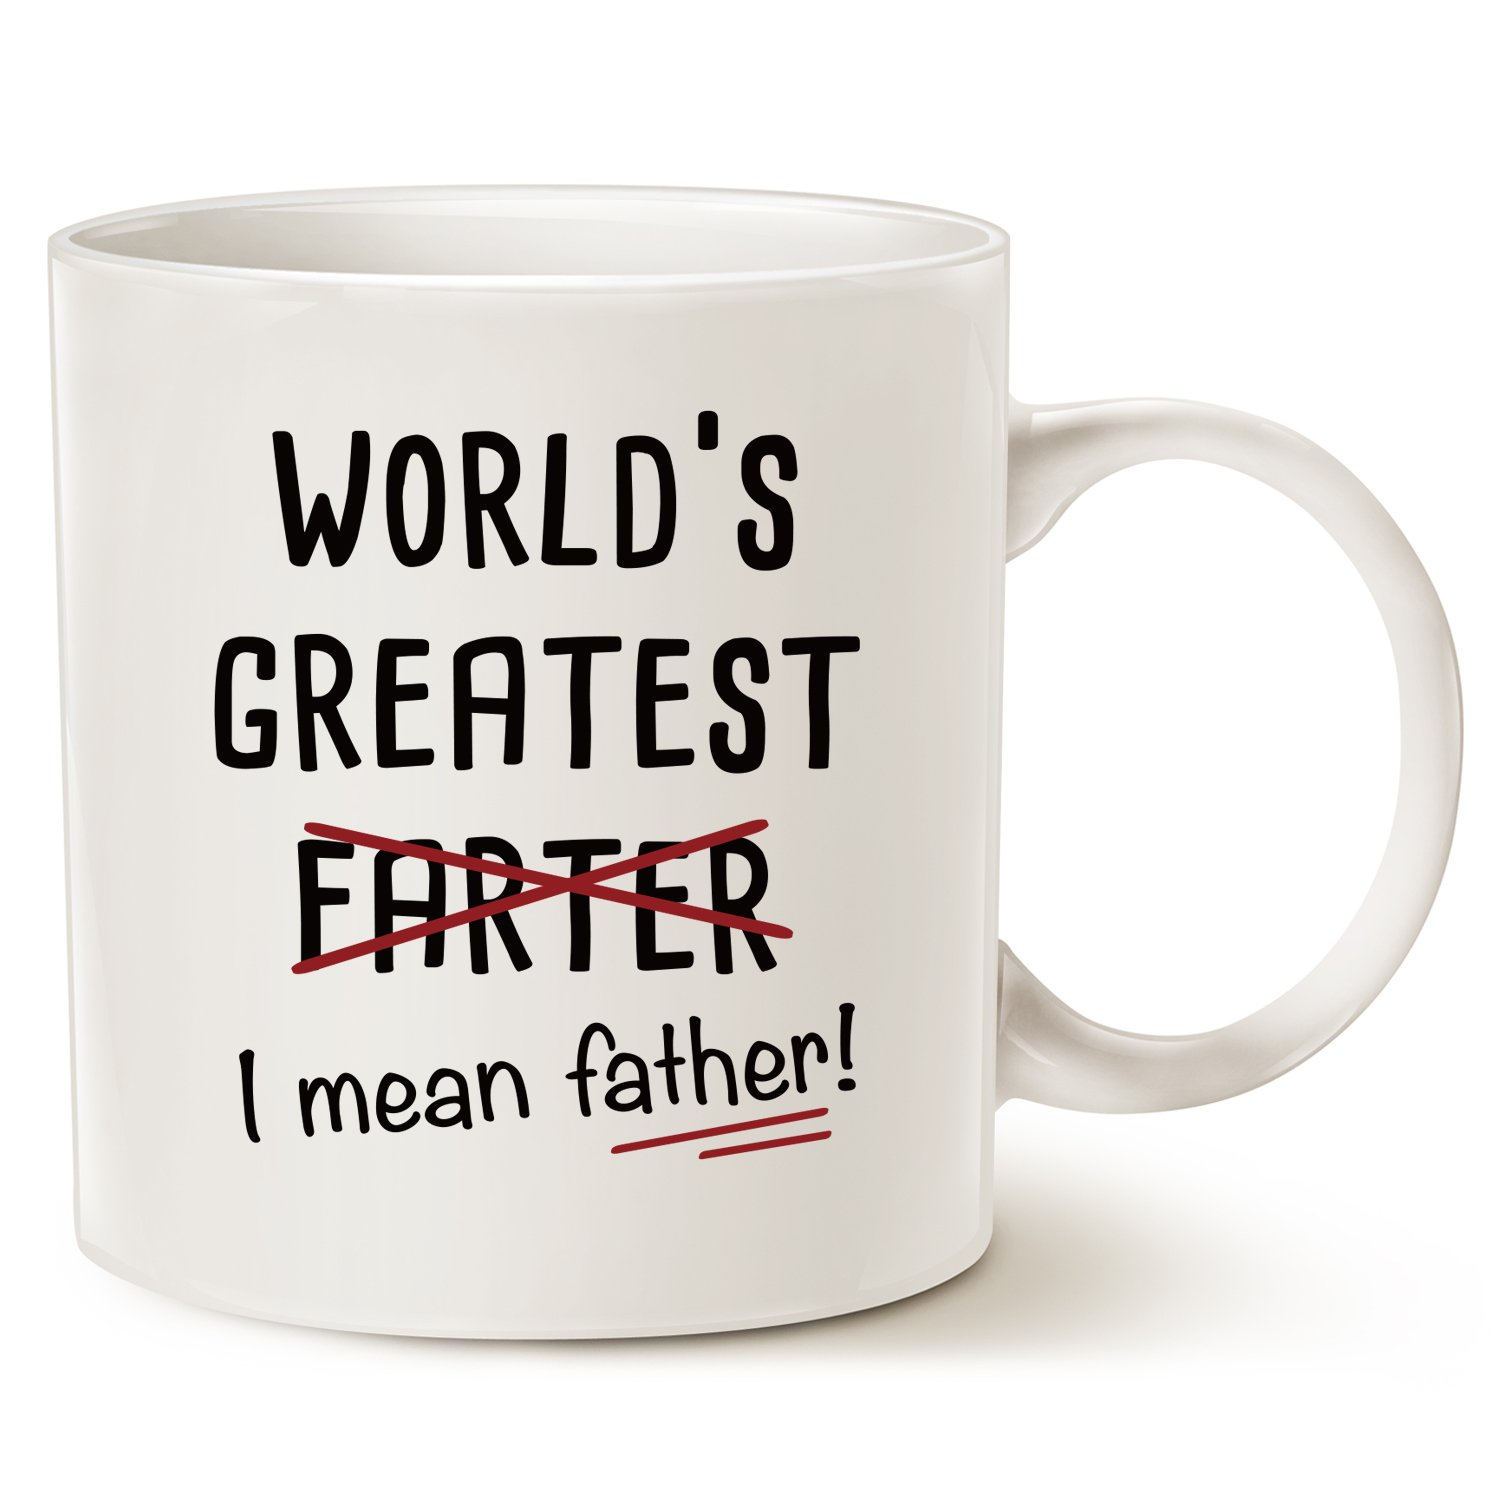 Fathers Day Gifts Funny Christmas Gifts Best Dad Coffee Mug - World's Greatest F, I Mean Father - Best Cute Birthday Gifts for Dad Cup White, 11 Oz